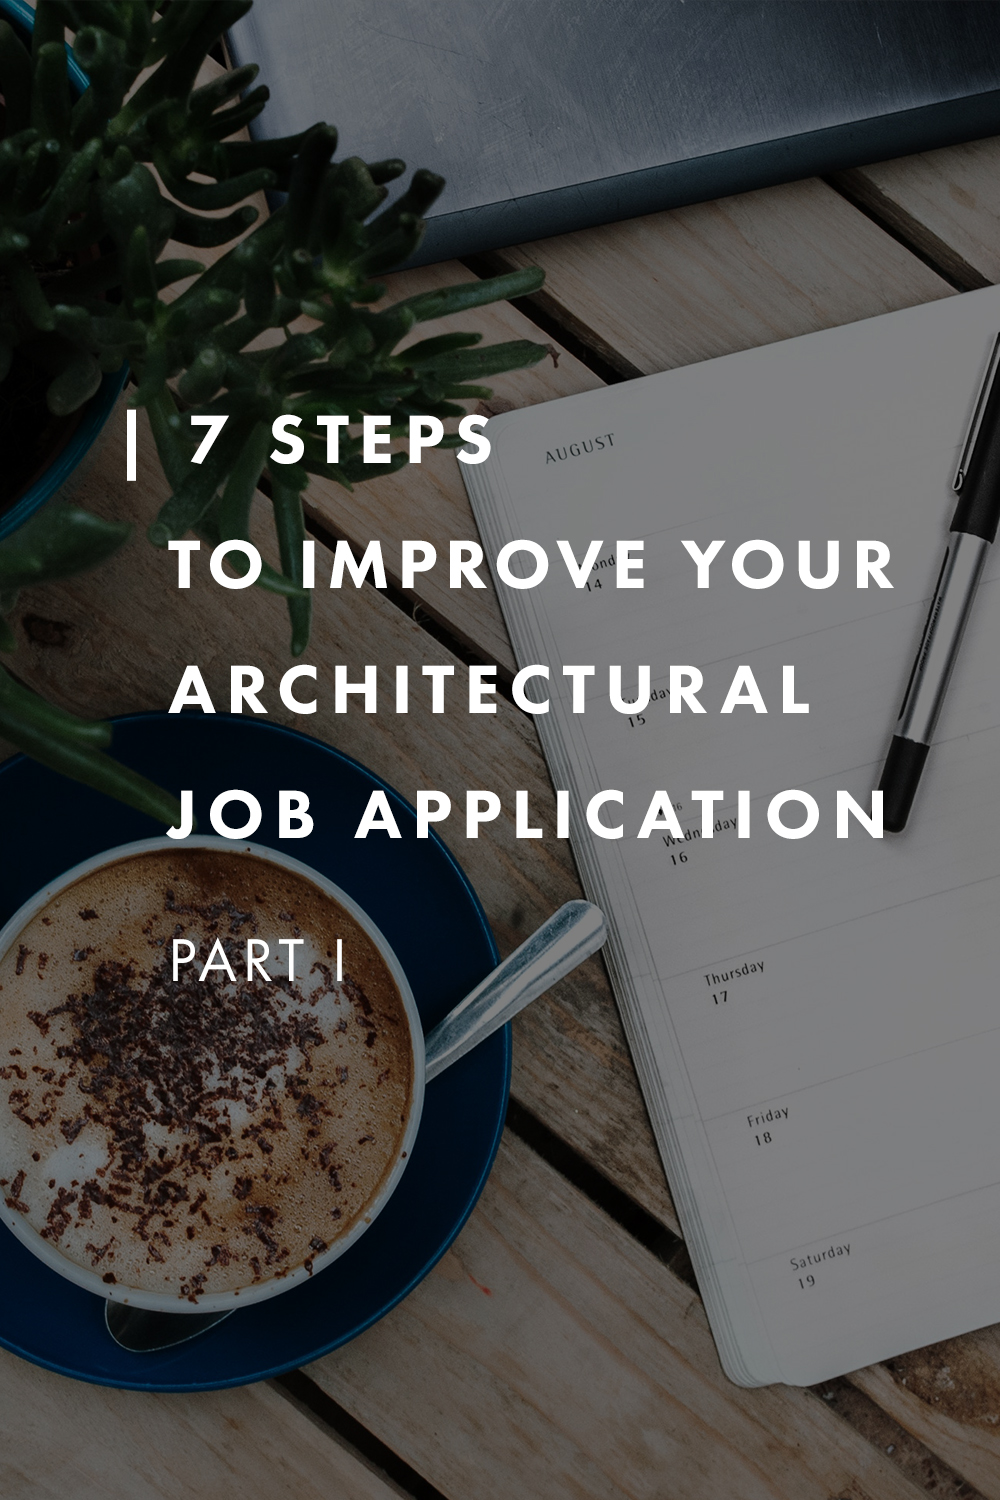 How do we break the mold and show them that we are of value and not just a draft monkey? In this 2-part series, I'm going to show you the step-by-step process you can take to improve your job application to make the employer know they should hire you. Today we will go through the journey from your resume, to the application, to the ultimate interview. | Millennial Architects